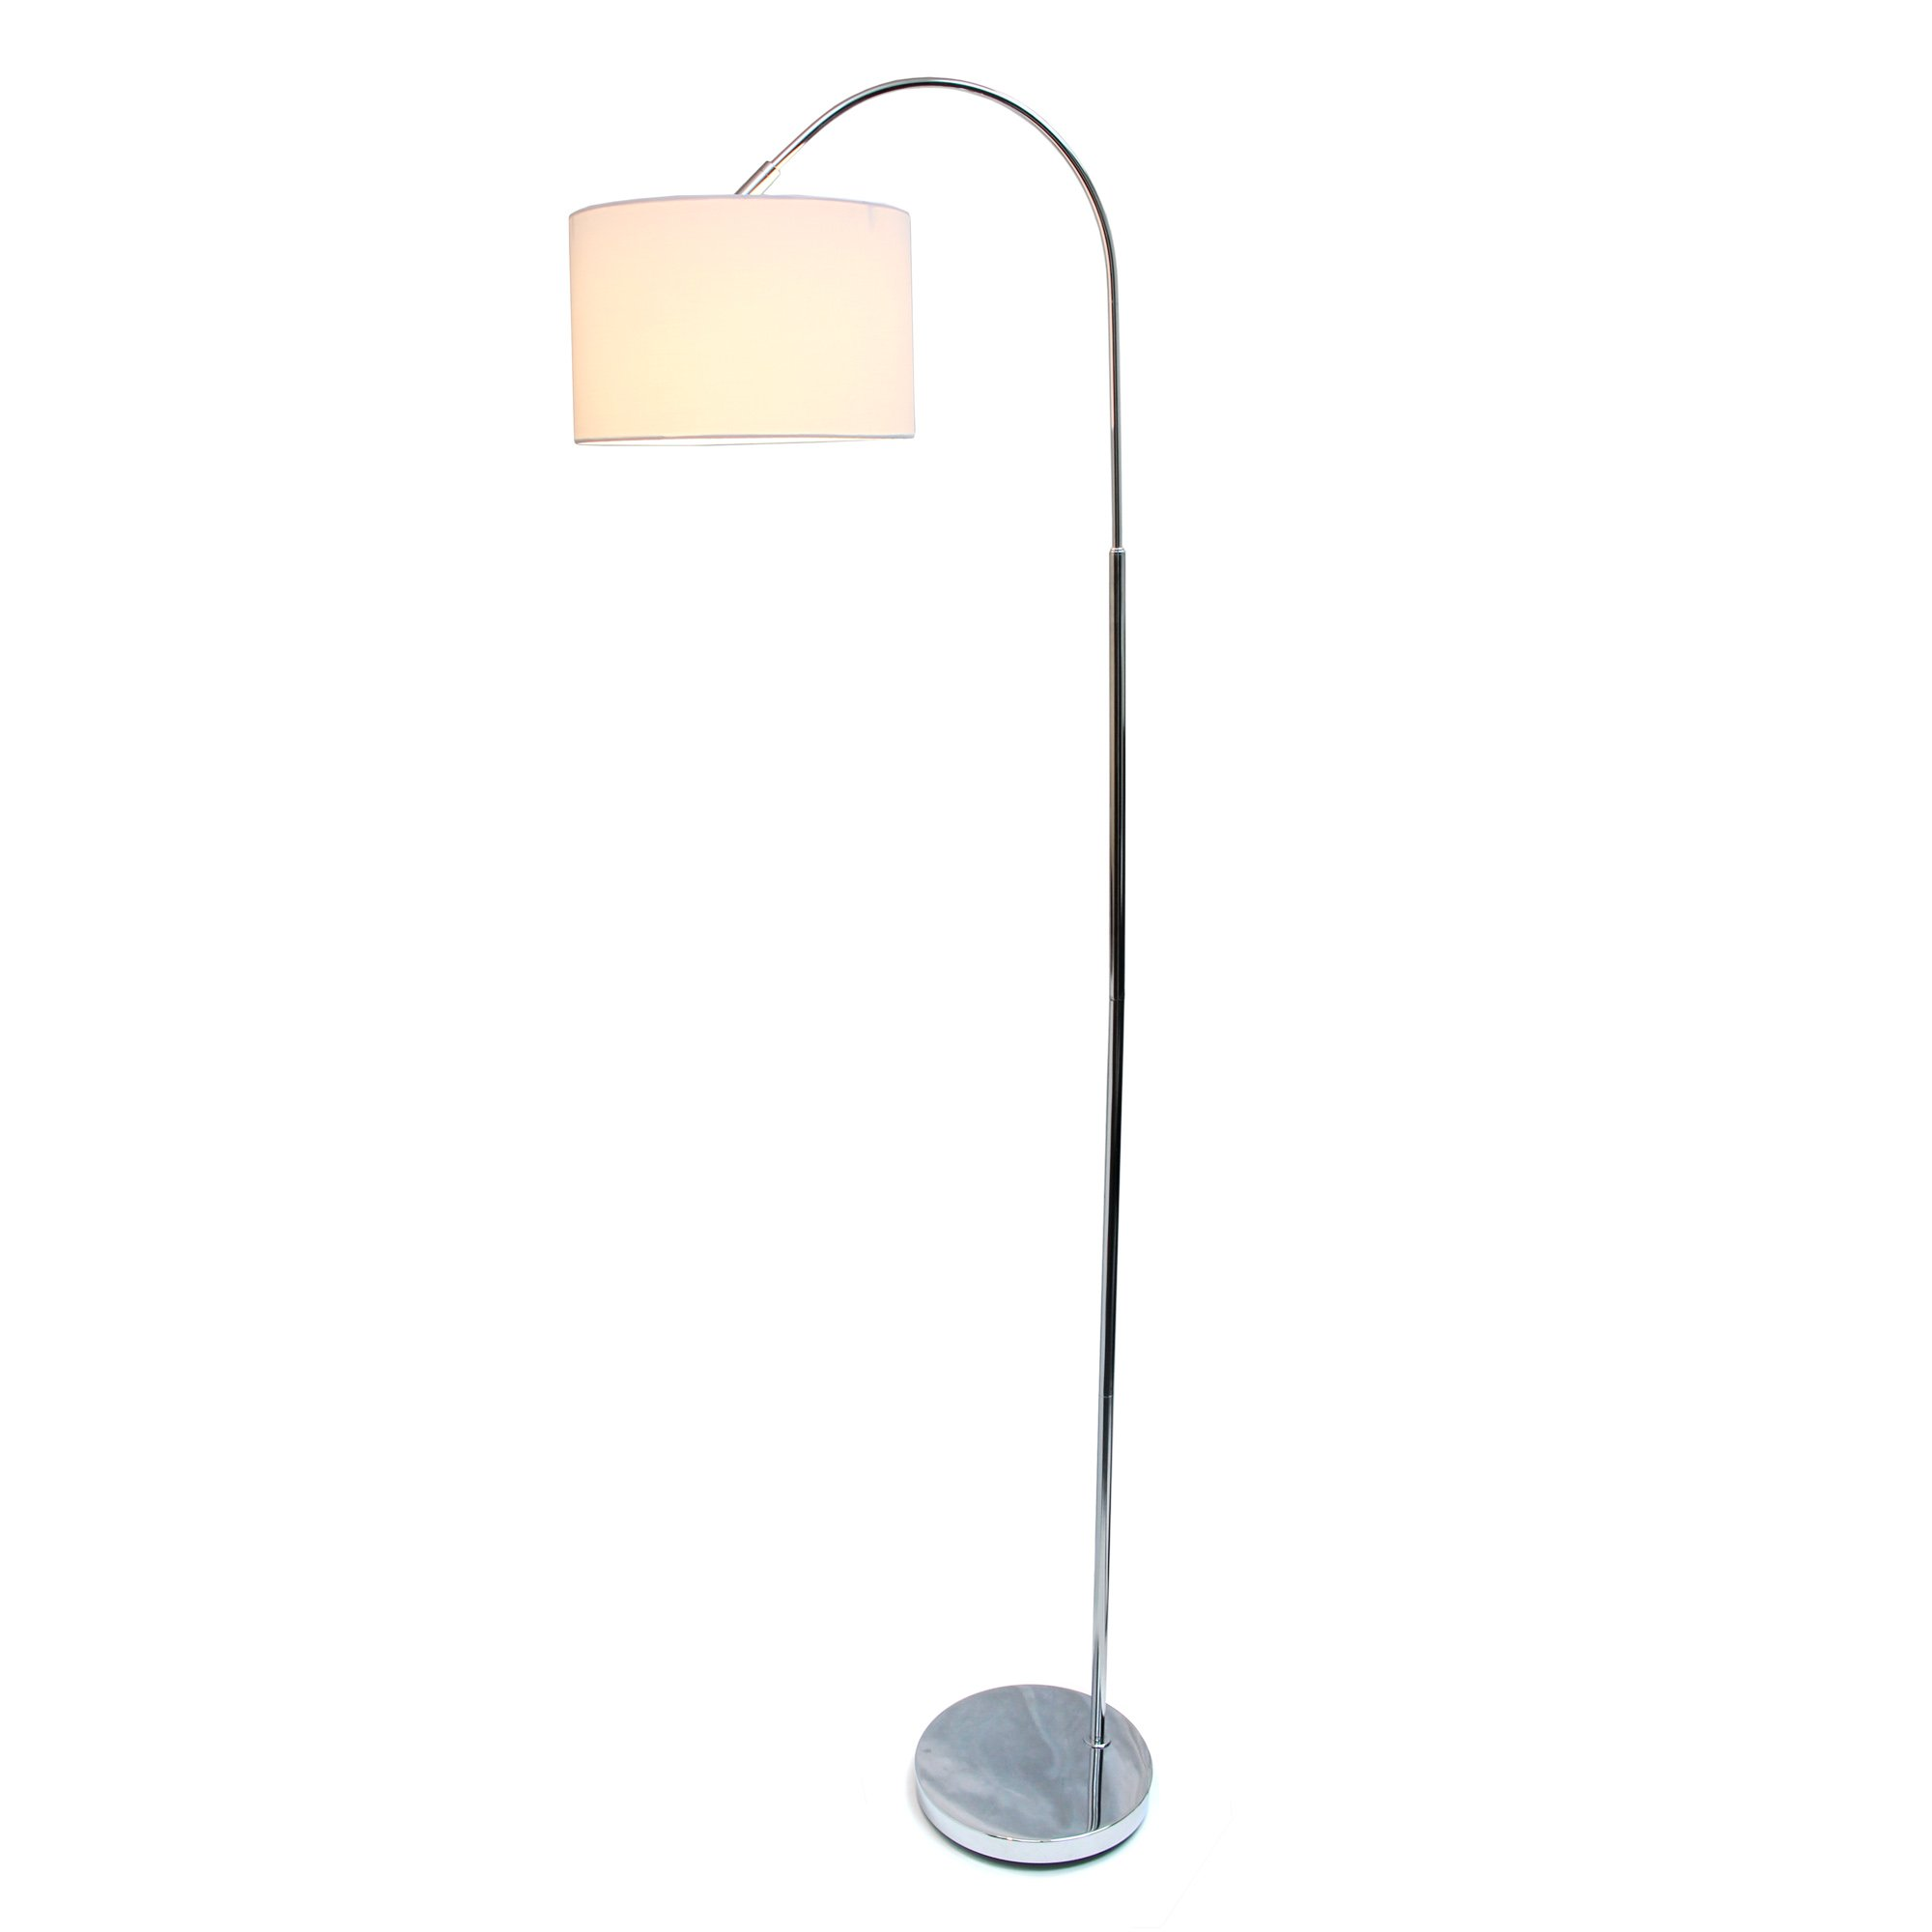 Simple Designs Home LF2005-WHT Simple Designs Arched Brushed Nickel Floor Lamp, White Shade Brushed Nickel Arched Floor Lamp, White Shade